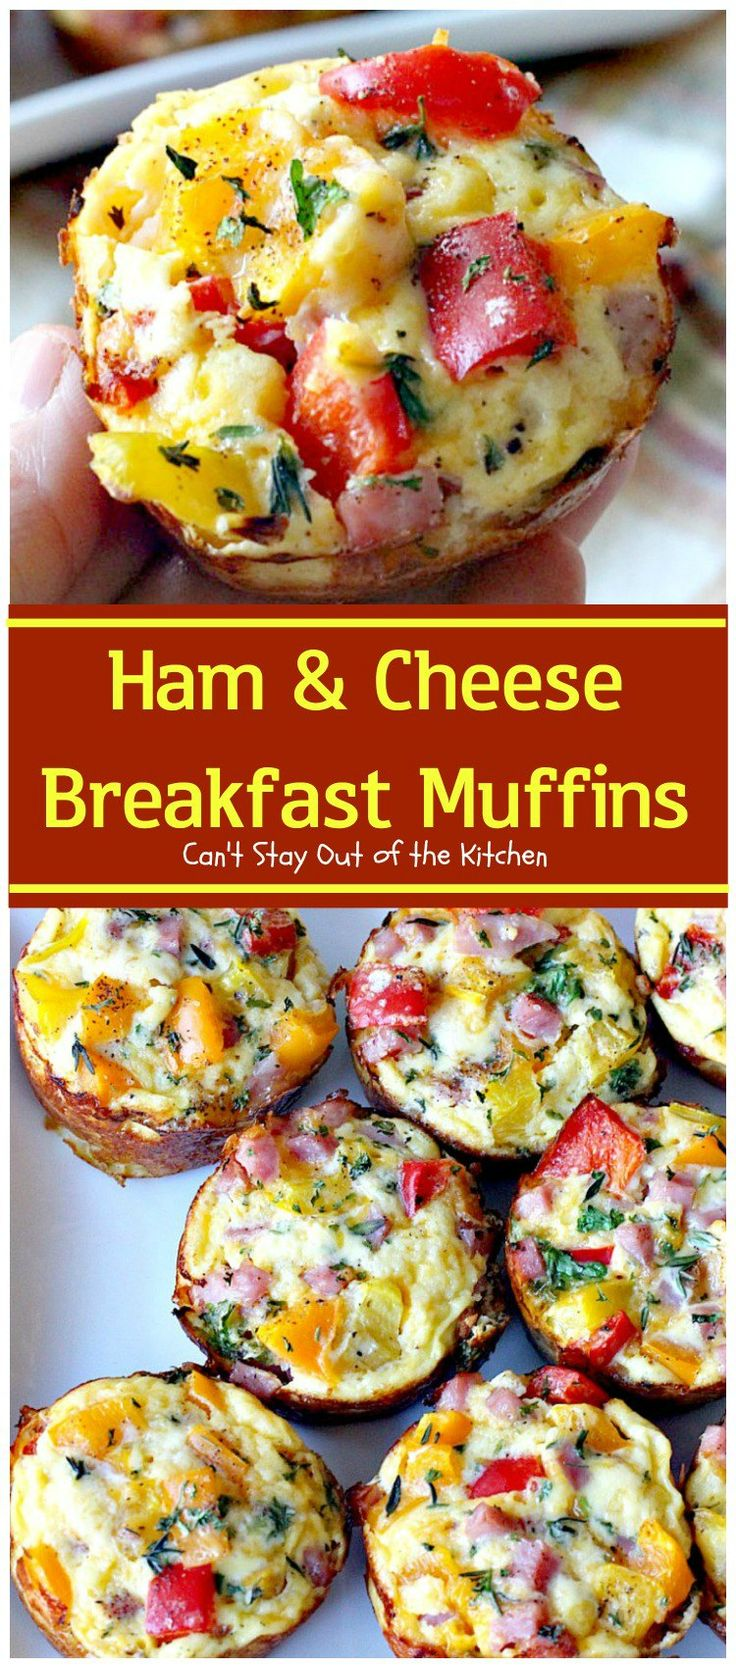 Ham and Cheese Breakfast Muffins   Can't Stay Out of the Kitchen